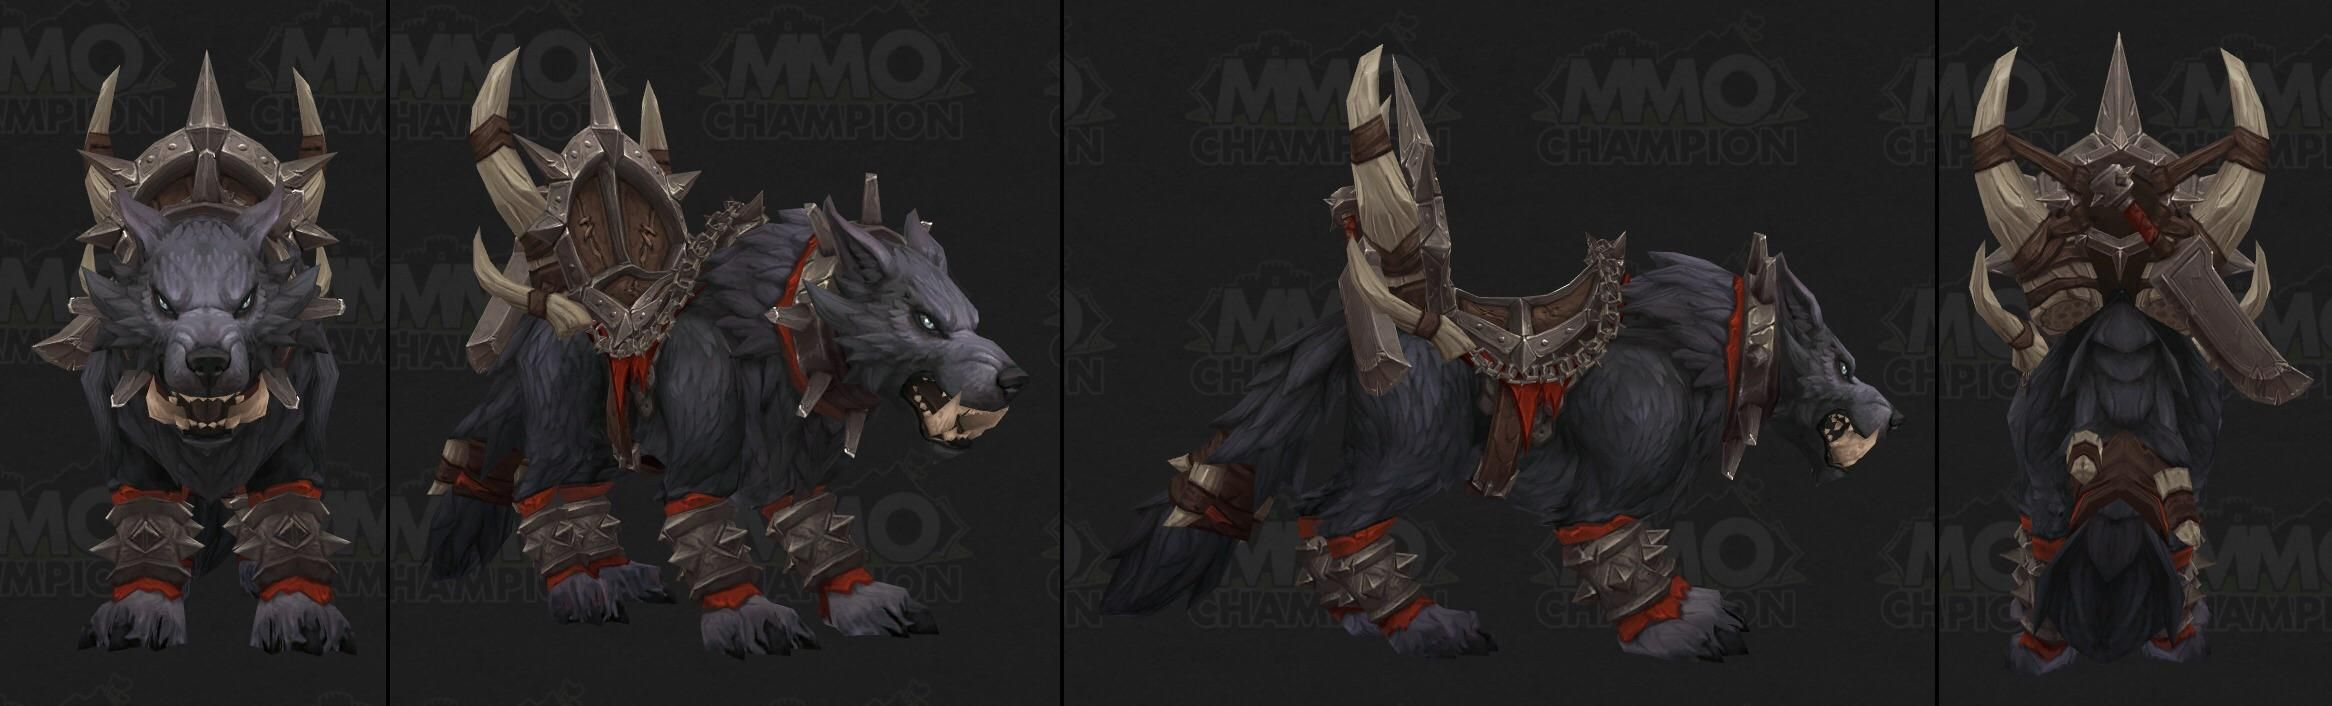 New Mount Datamined Called Maghar Direwolf Looks Like Well Be Getting Outland Orcs Not Draenor Ones Worldofwarcraft B Dire Wolf Hearthstone World Of Warcraft